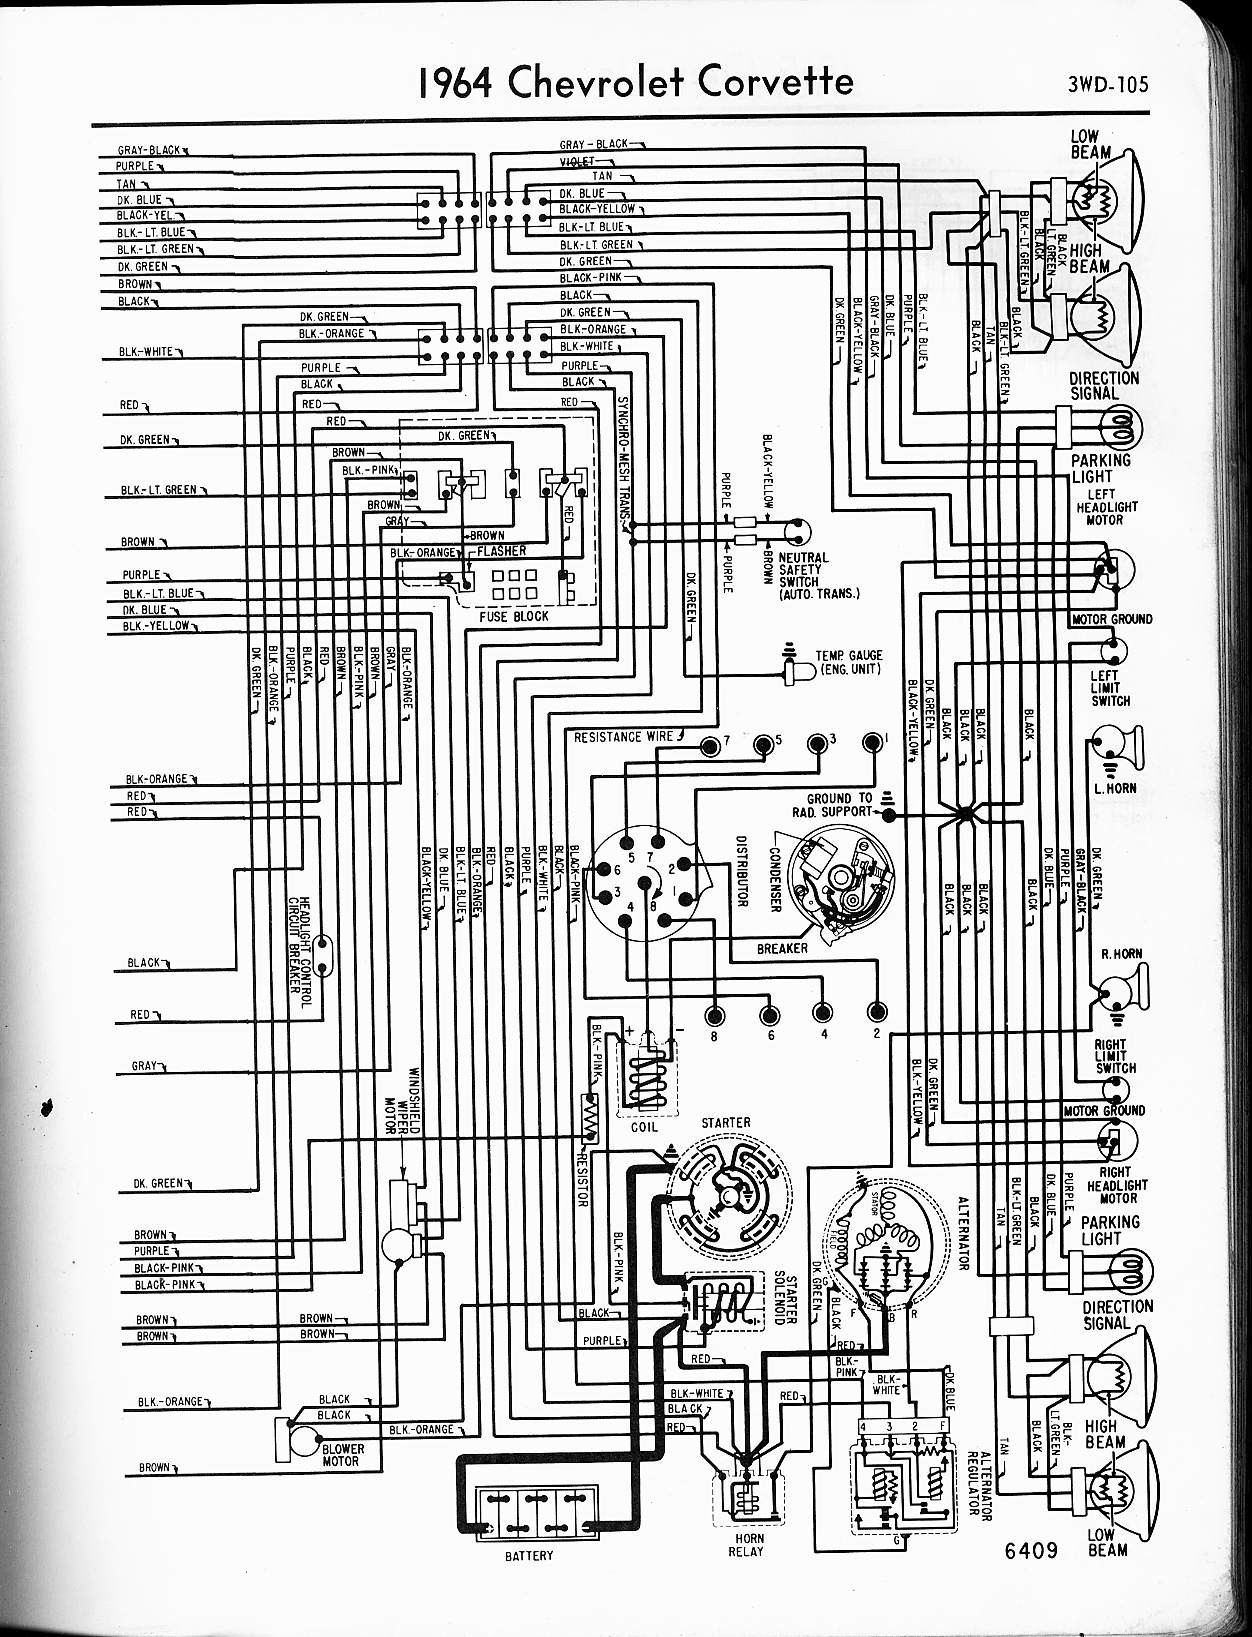 E Starter Wiring Diagram 1976 Chevy Nova Diagrams 66 Harness 81 Corvette Schematics Best Site Color 1973